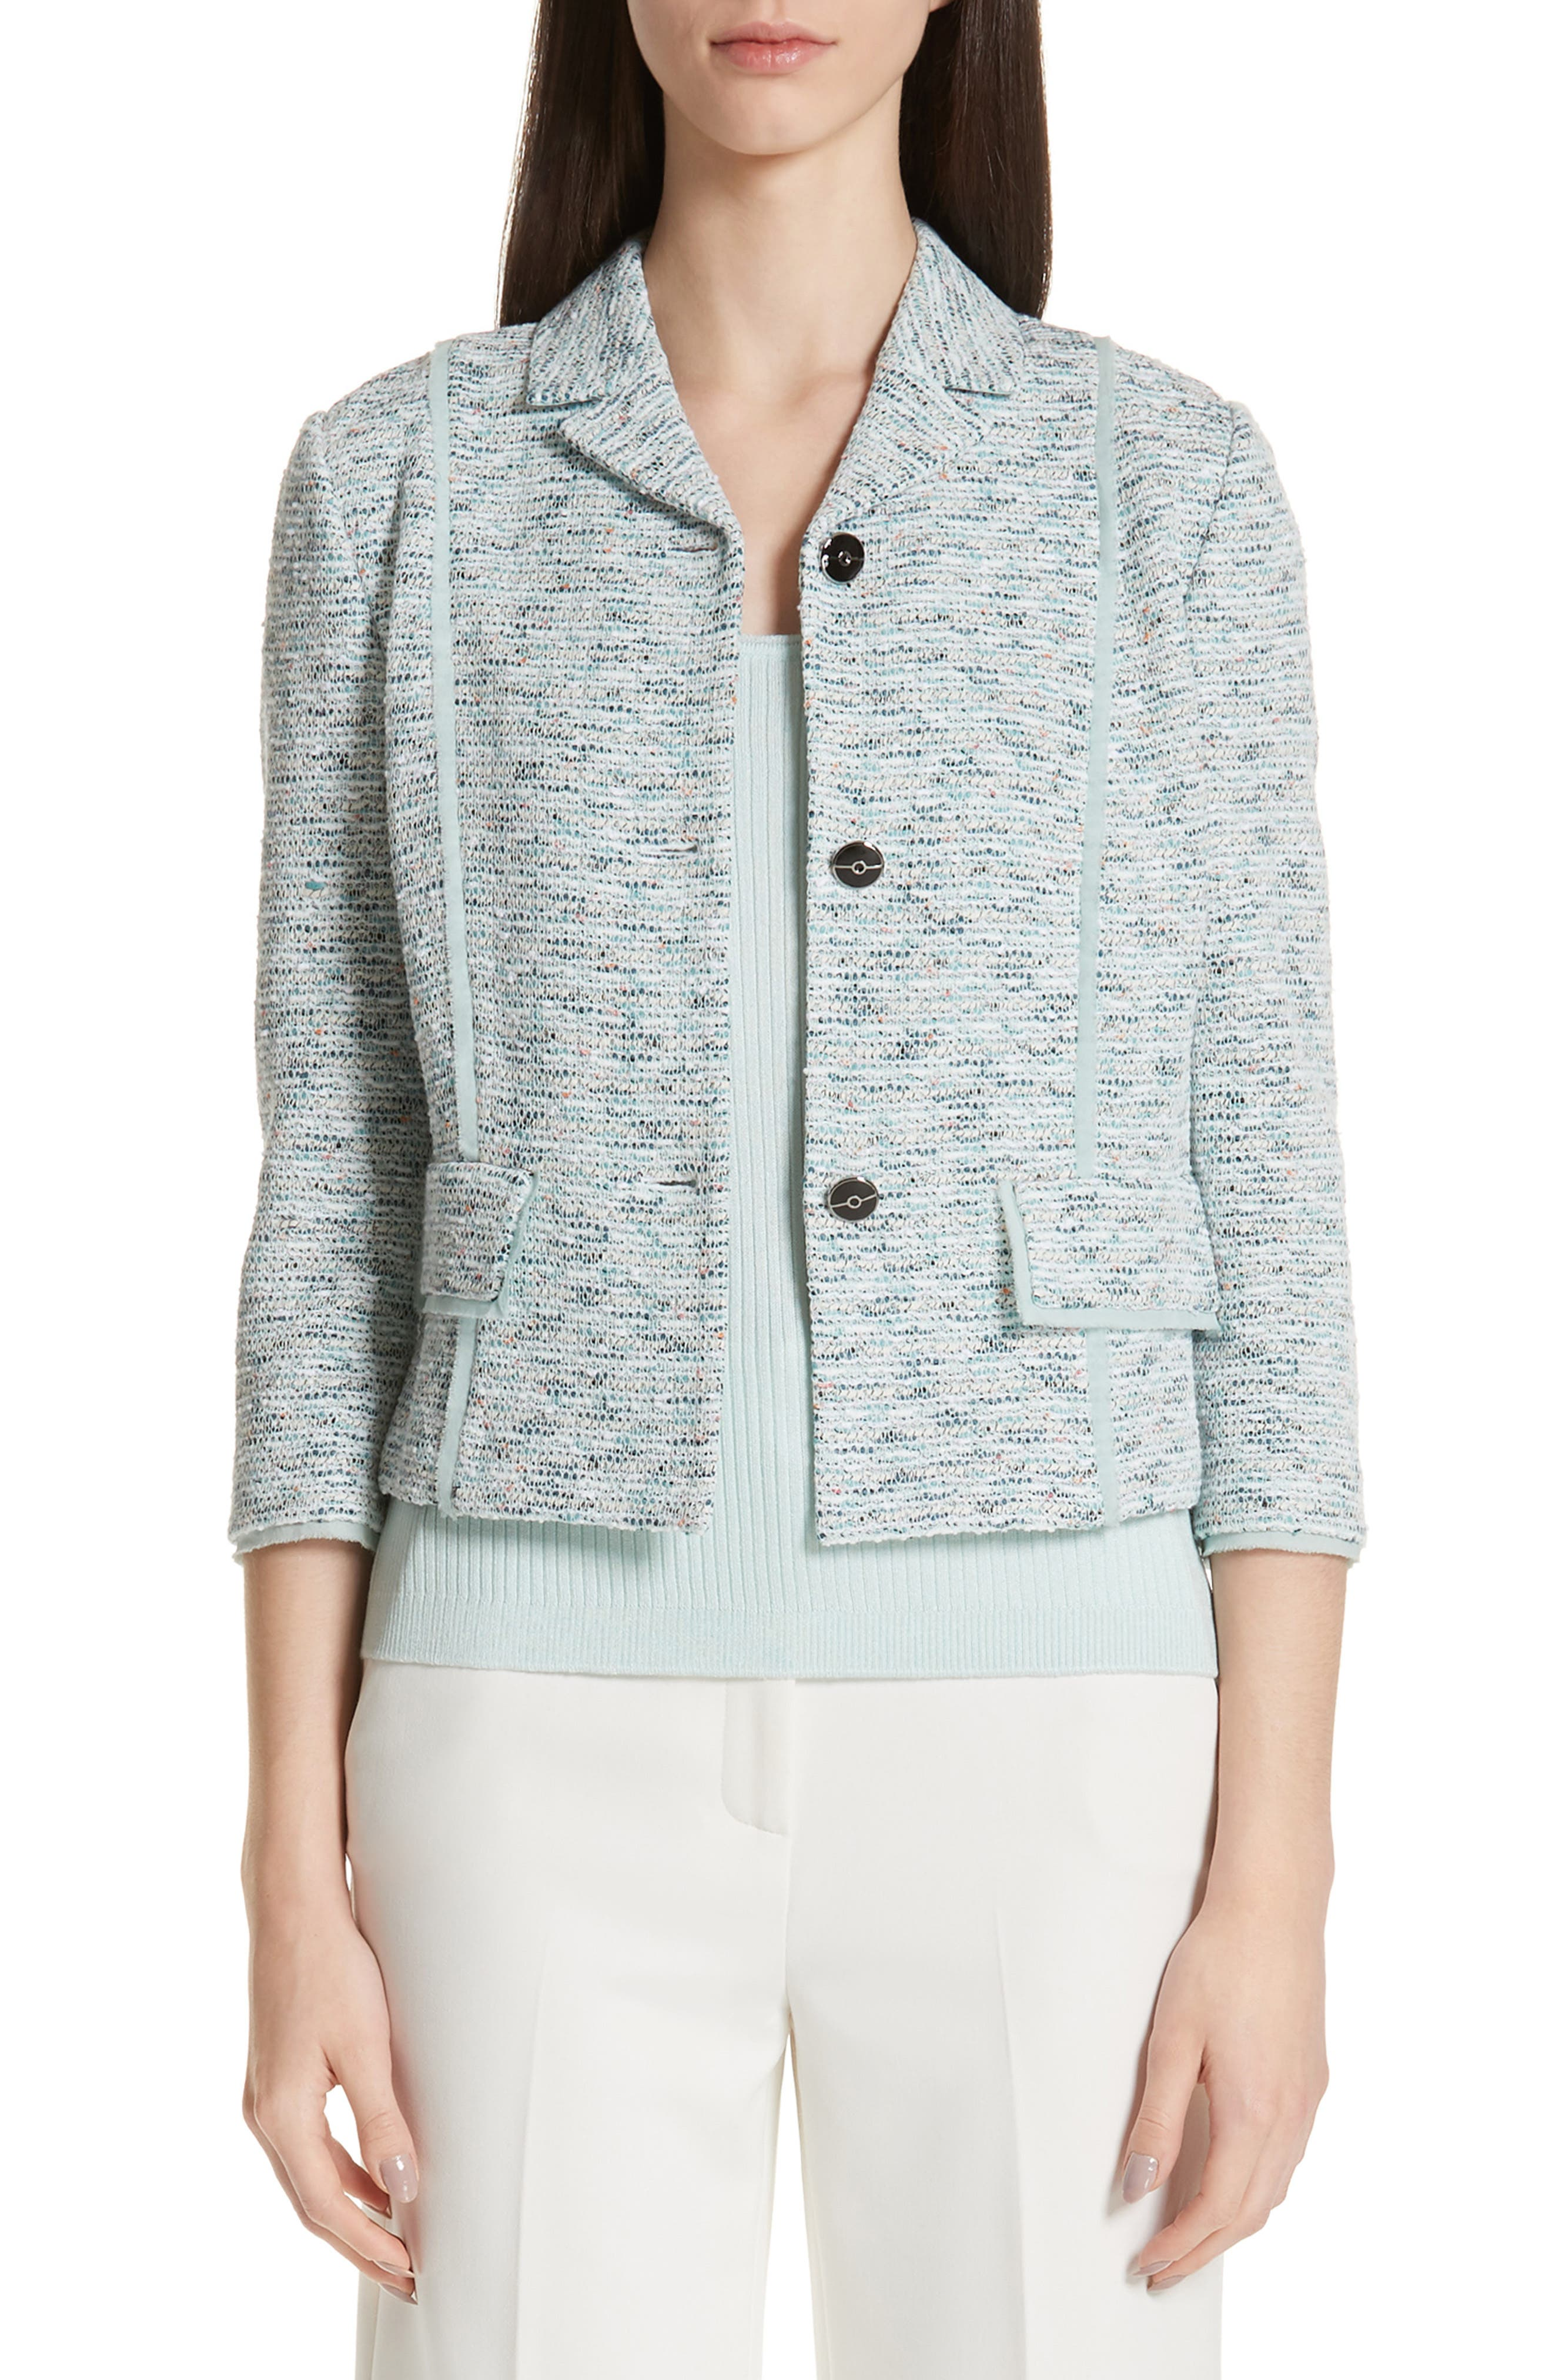 ST. JOHN COLLECTION,                             Alessandra Knit Jacket,                             Main thumbnail 1, color,                             OPAL MULTI